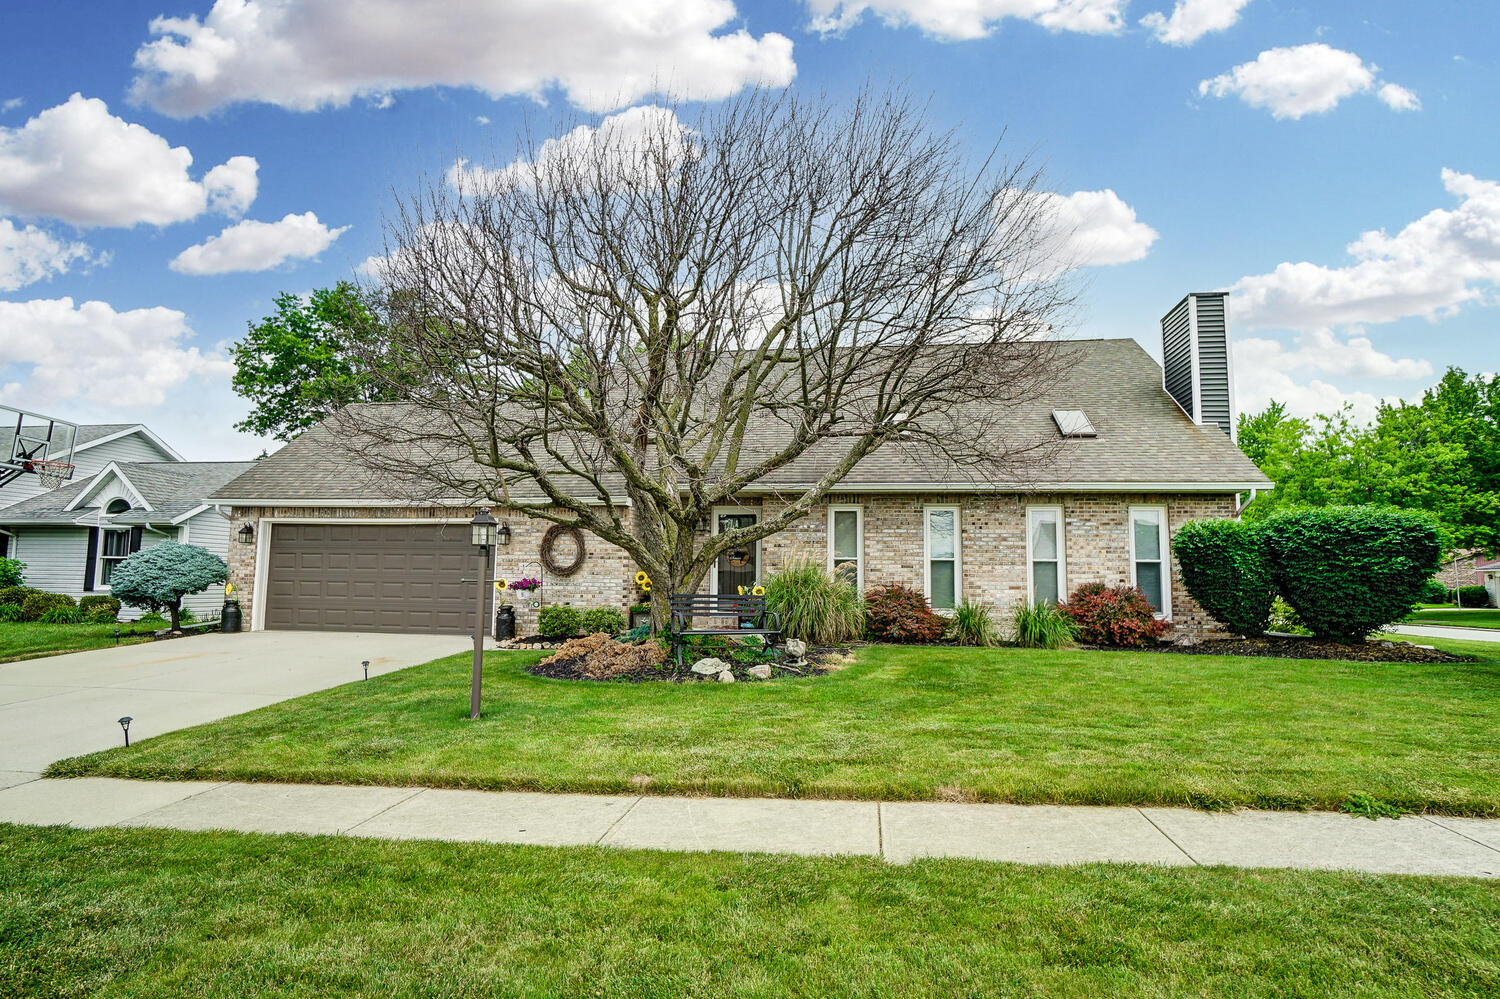 Enjoy your summer in this beautifully maintained home.  This home is ready to move into with many recent updates: Paint throughout, Flooring 2020, Light fixtures 2020, Windows & Siding 2019, Front door & Patio door 2019, Stainless appliances 2018, Master bath venting 2021, Updated landscaping including raised garden beds 2021, Kitchen backsplash 2021.  Spacious and comfortable with two living areas, eat-in kitchen and partial basement finish.  Living room offers vaulted ceiling.  Private, first floor master suite.  Backyard hosts a large deck for relaxation or entertaining.  Conveniently located in Sherwood Park. 1)Square footage per Allen County Auditor. Room Sizes are approximate  Buyer's agent to attend all showings and inspections.